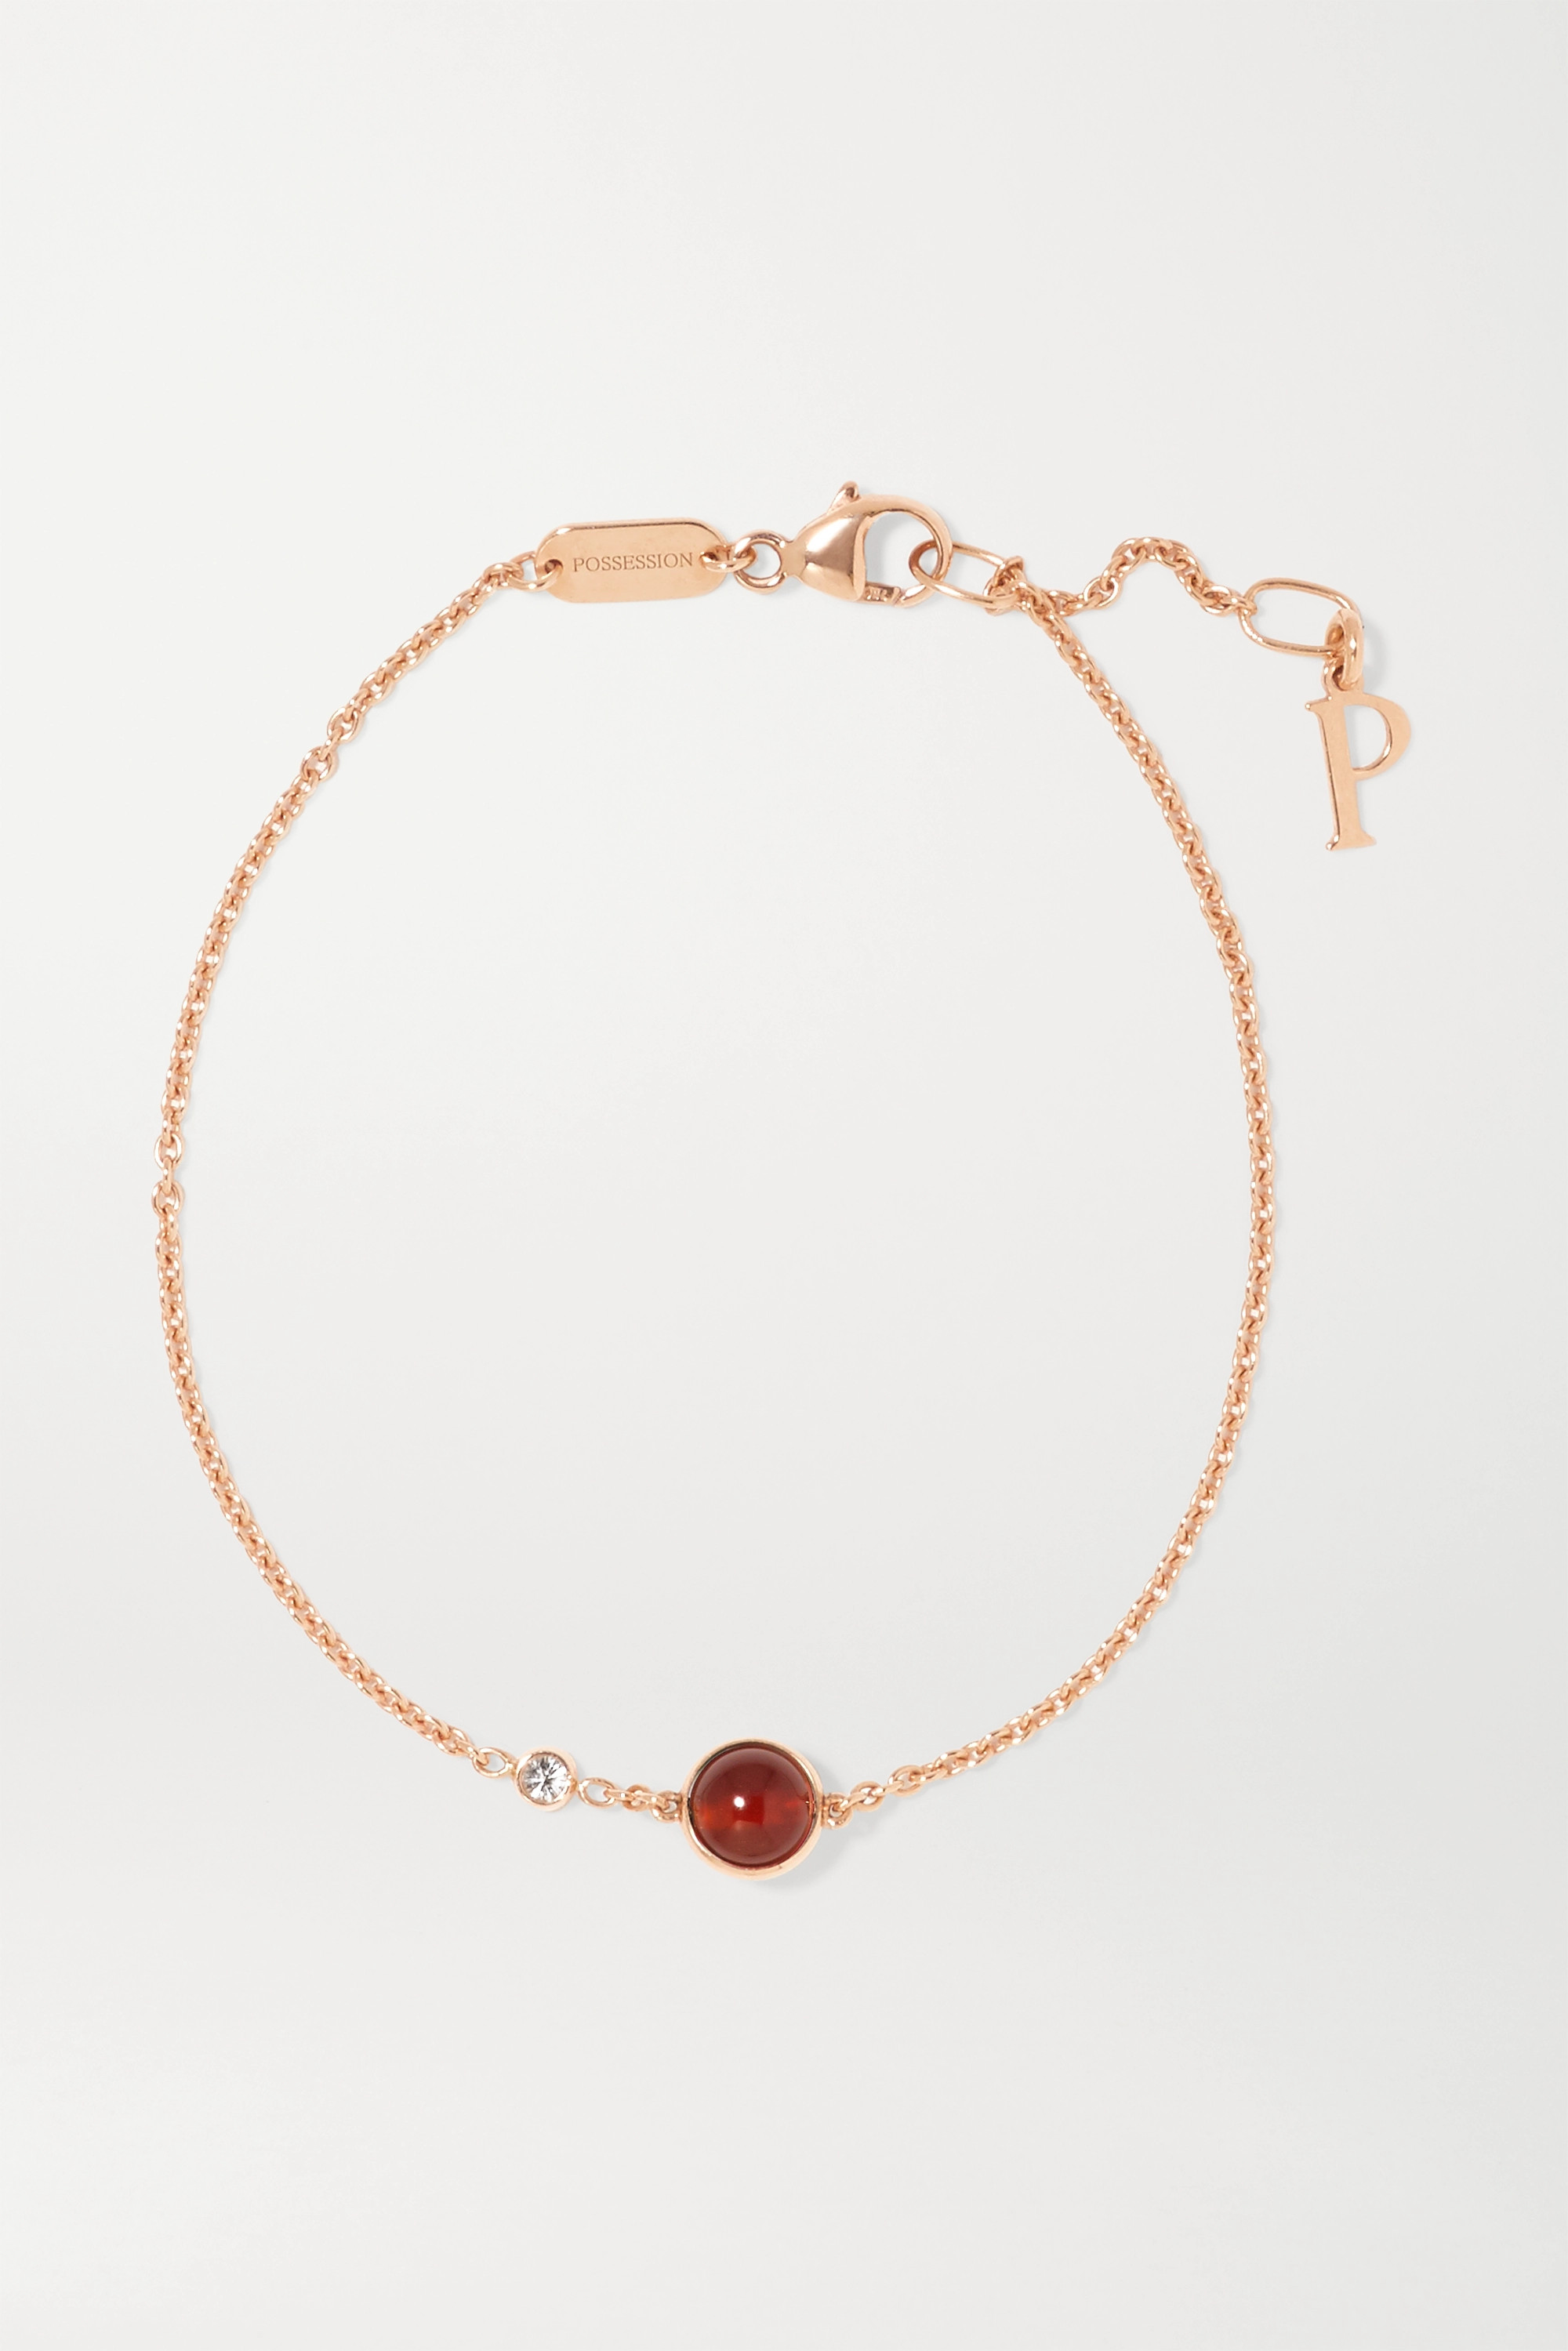 PIAGET Possession 18-karat rose gold, carnelian and diamond bracelet